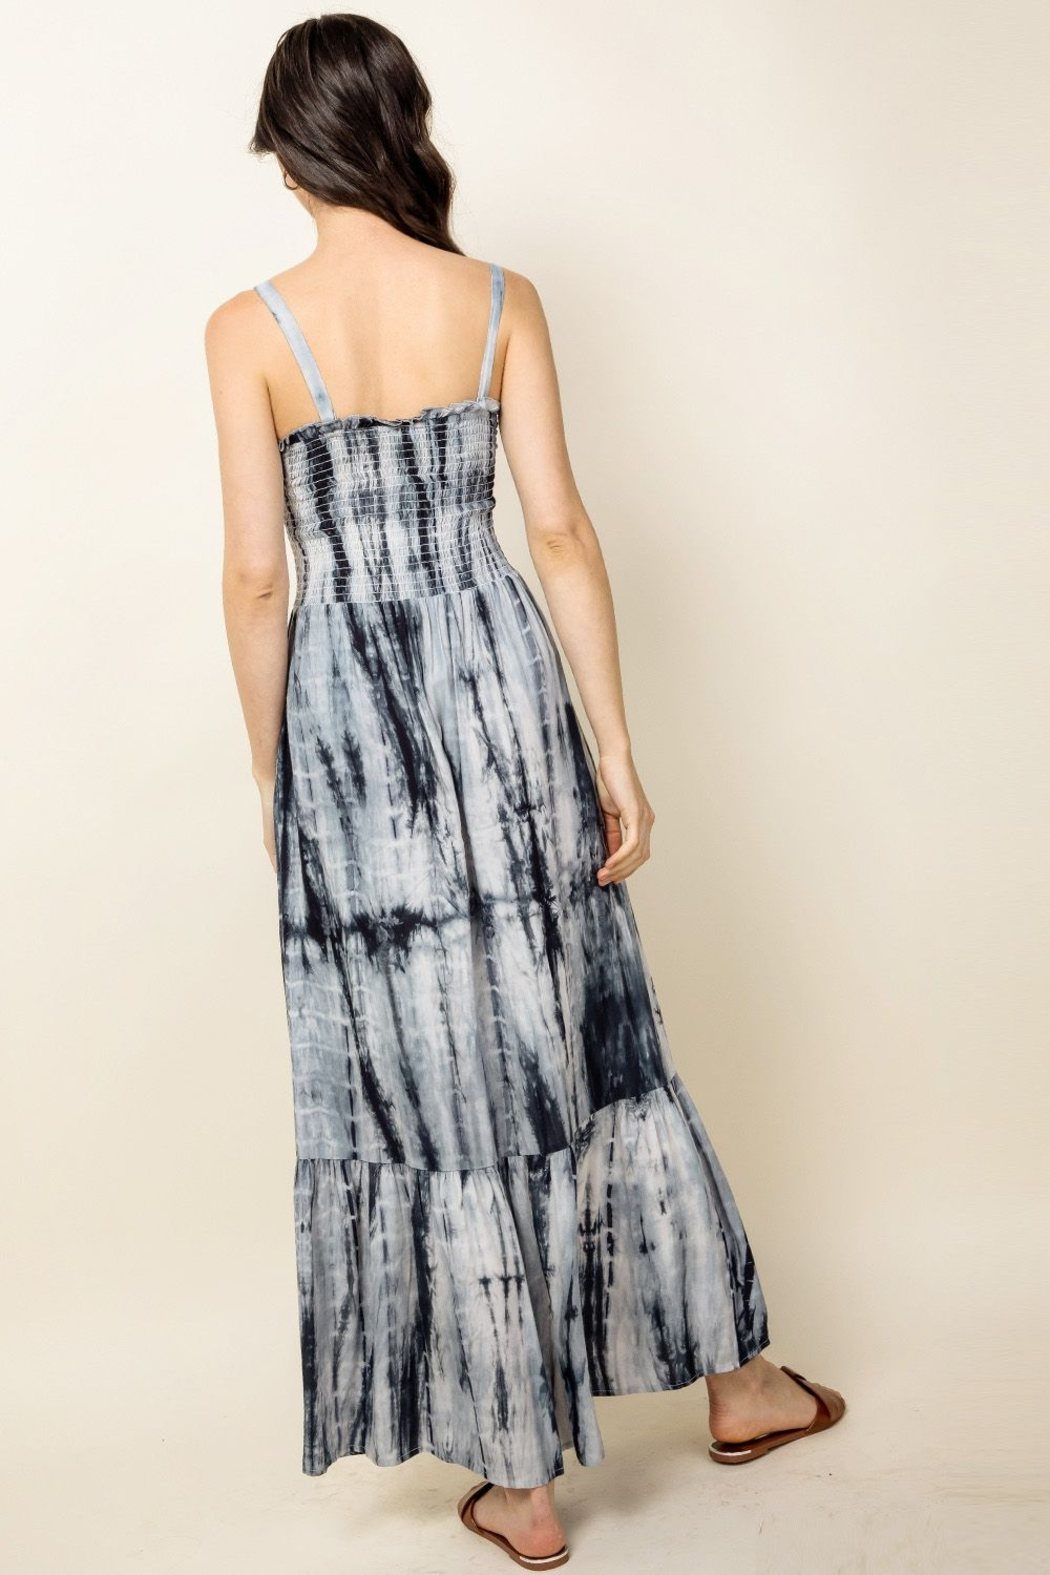 Thml TIE-DYED MAXI DRESS - Front Full Image